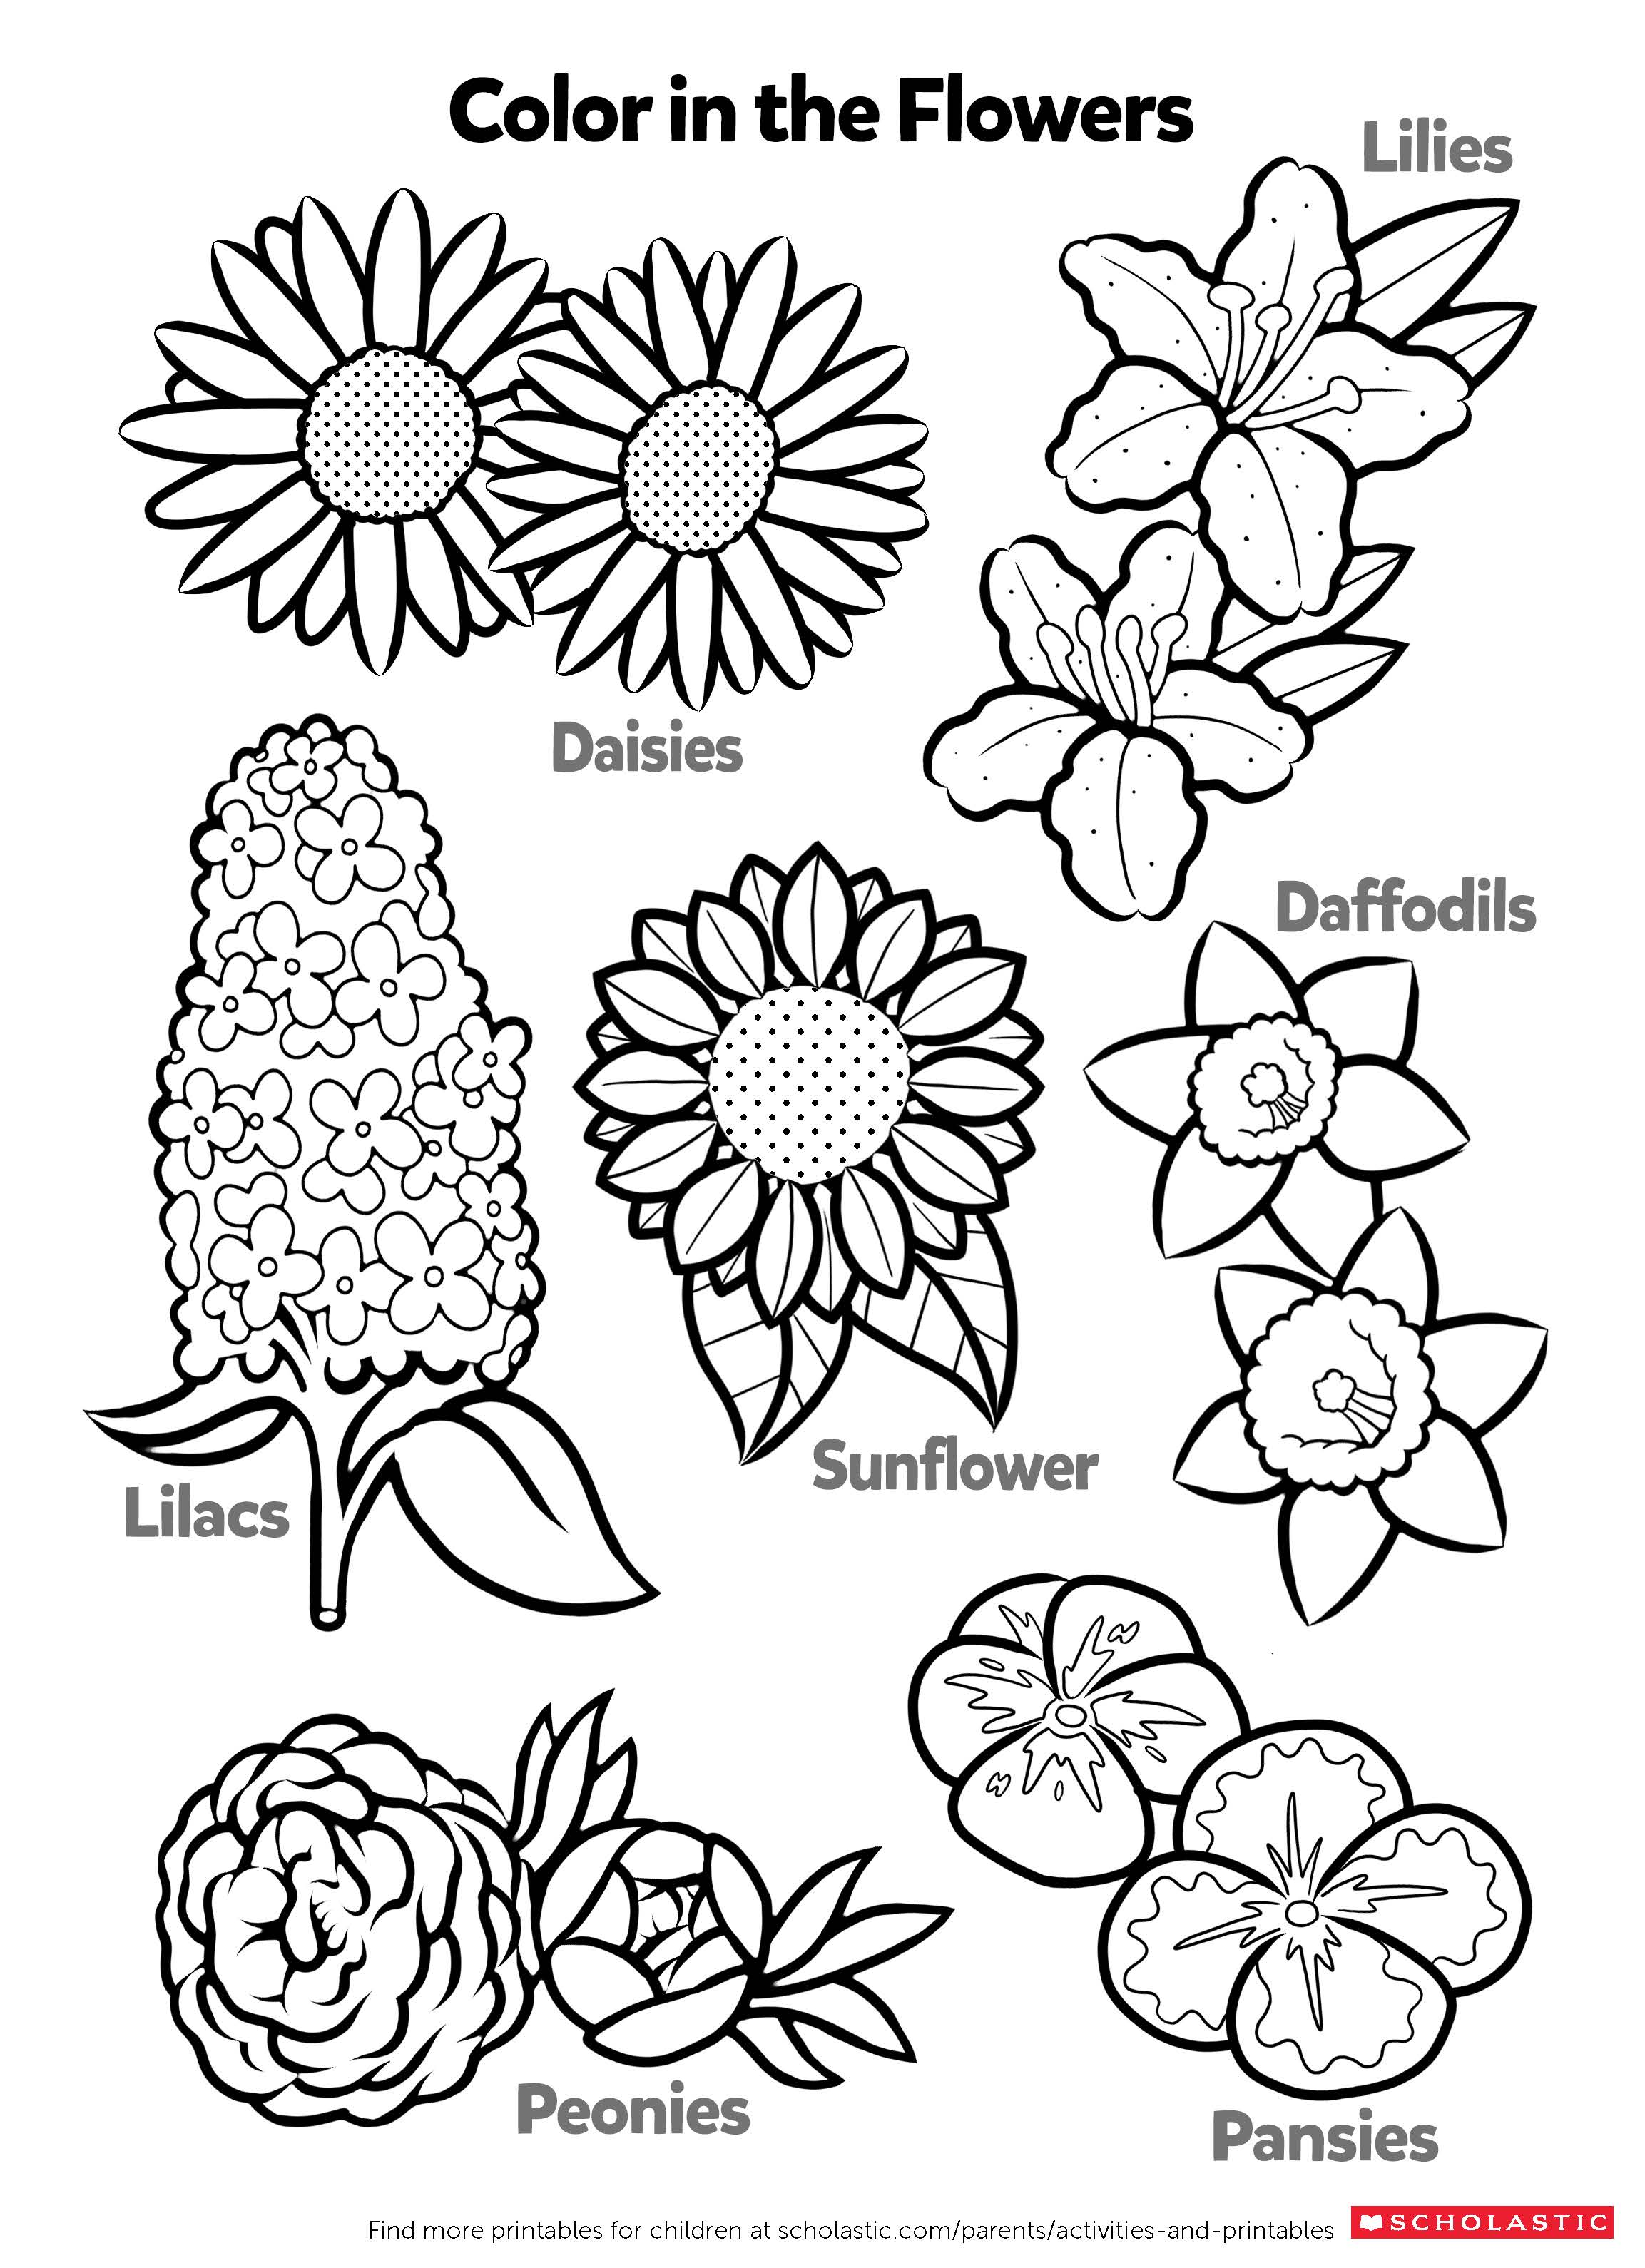 coloring worksheet for kids learn about flowers by coloring worksheets printables coloring kids worksheet for